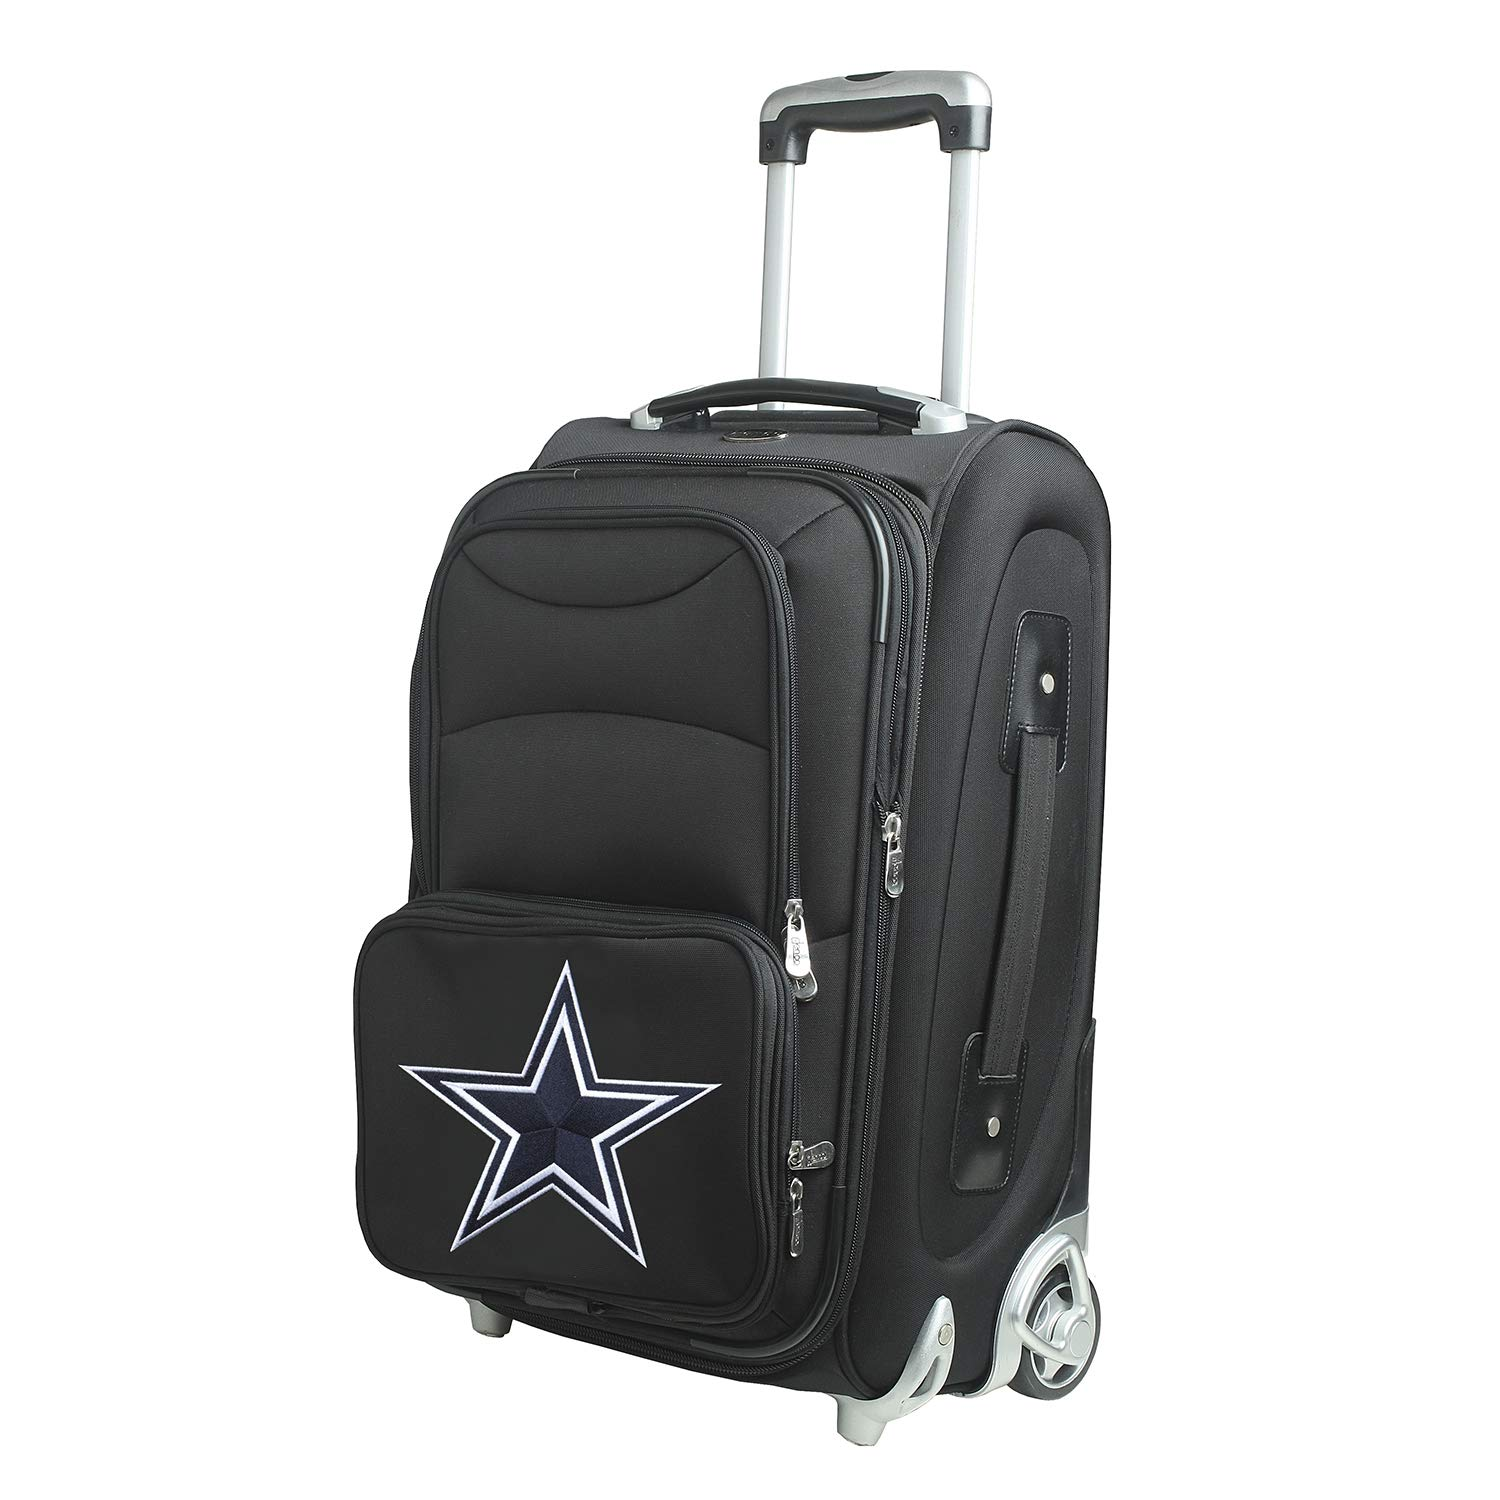 NFL Dallas Cowboys 21-inch Carry-On Luggage by Denco (Image #1)